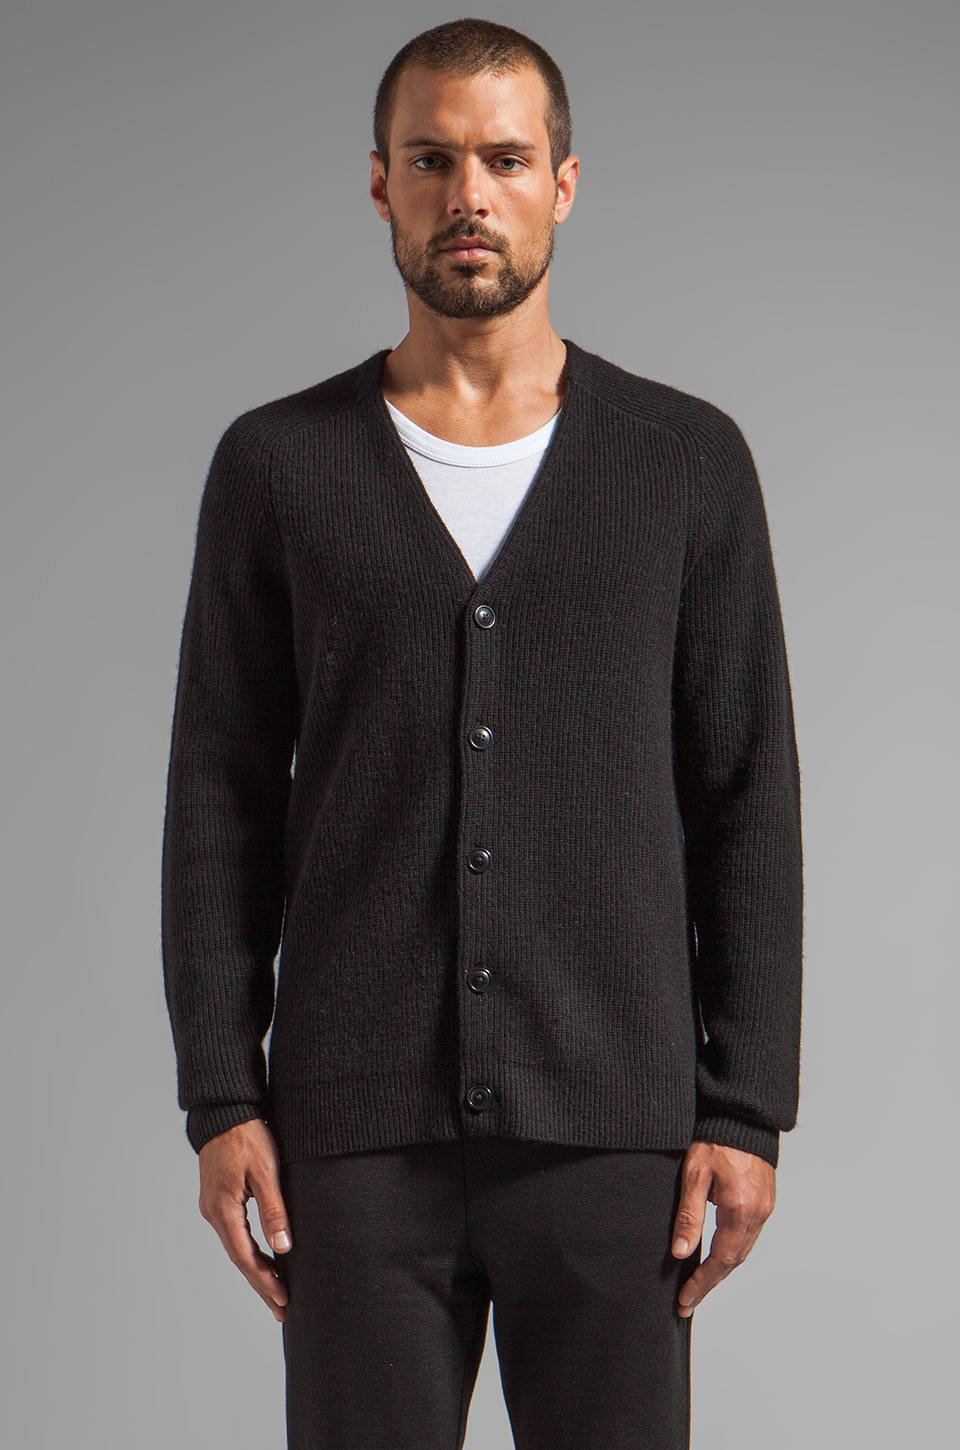 T by Alexander Wang Half Stitch Cardigan in Black